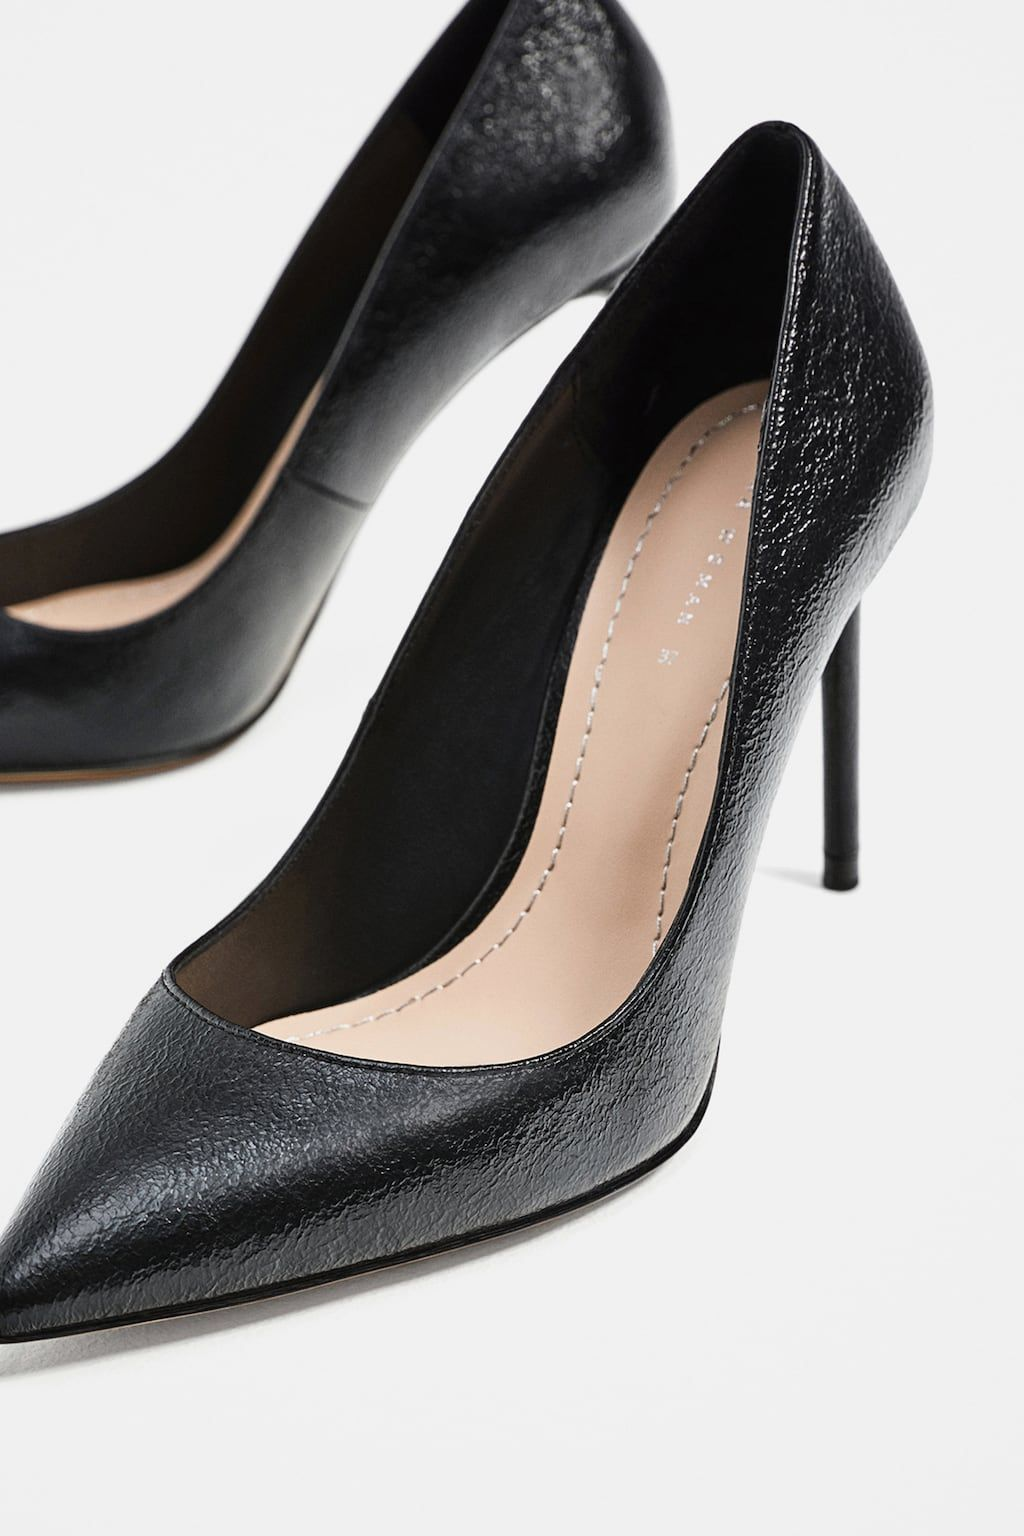 9f62af5b1a Image 5 of BLACK METALLIC PUMPS from Zara | Ahhh...SHOES! | Metallic ...